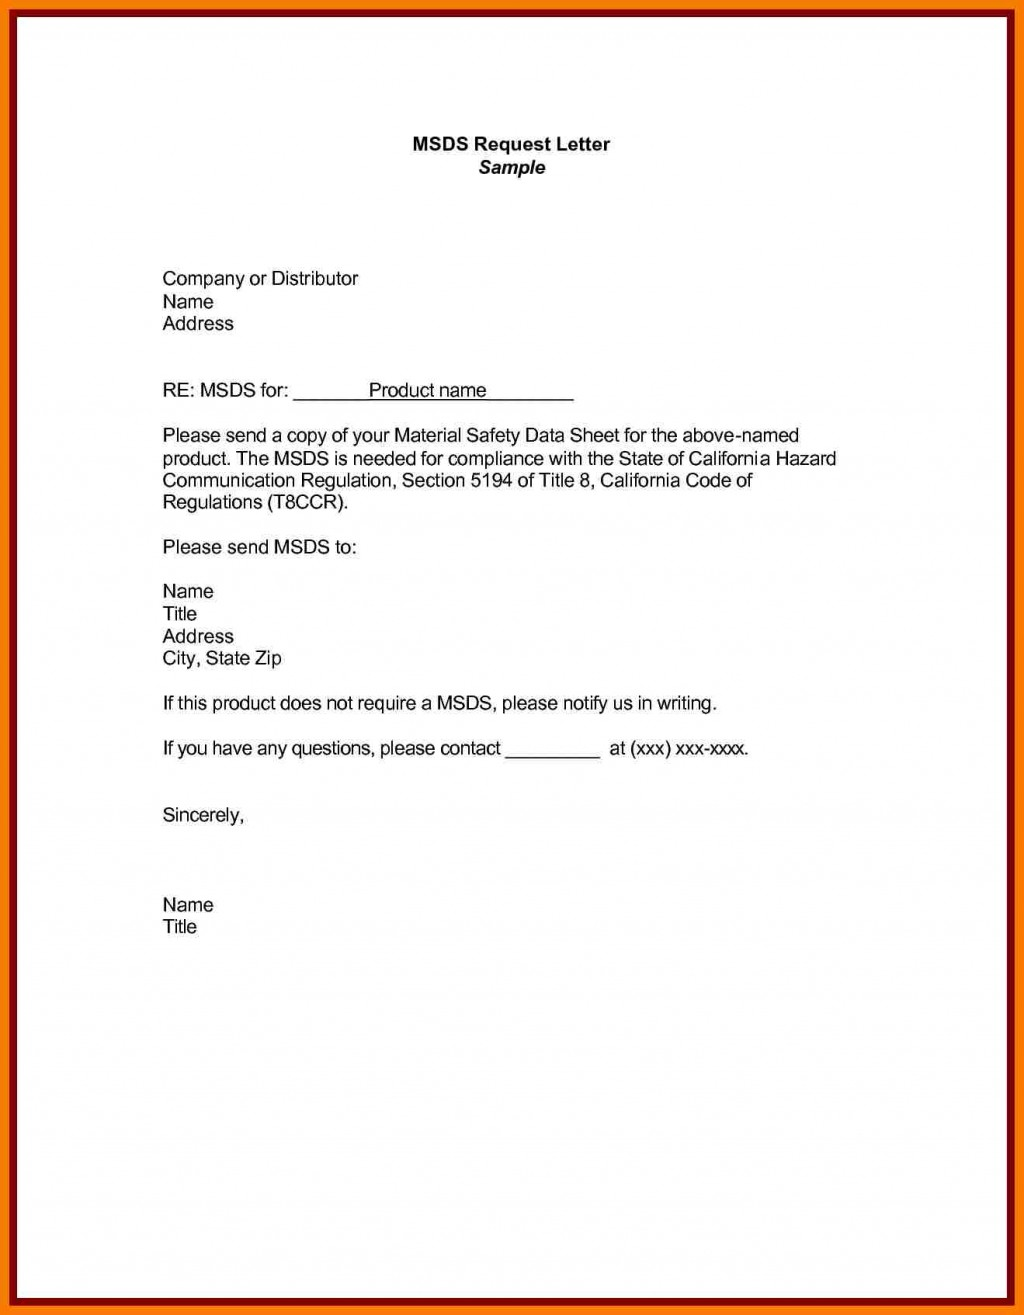 019 Essay Example 1517830870 Essays Usa Awesome Custom Buy Online No Plagiarism Large